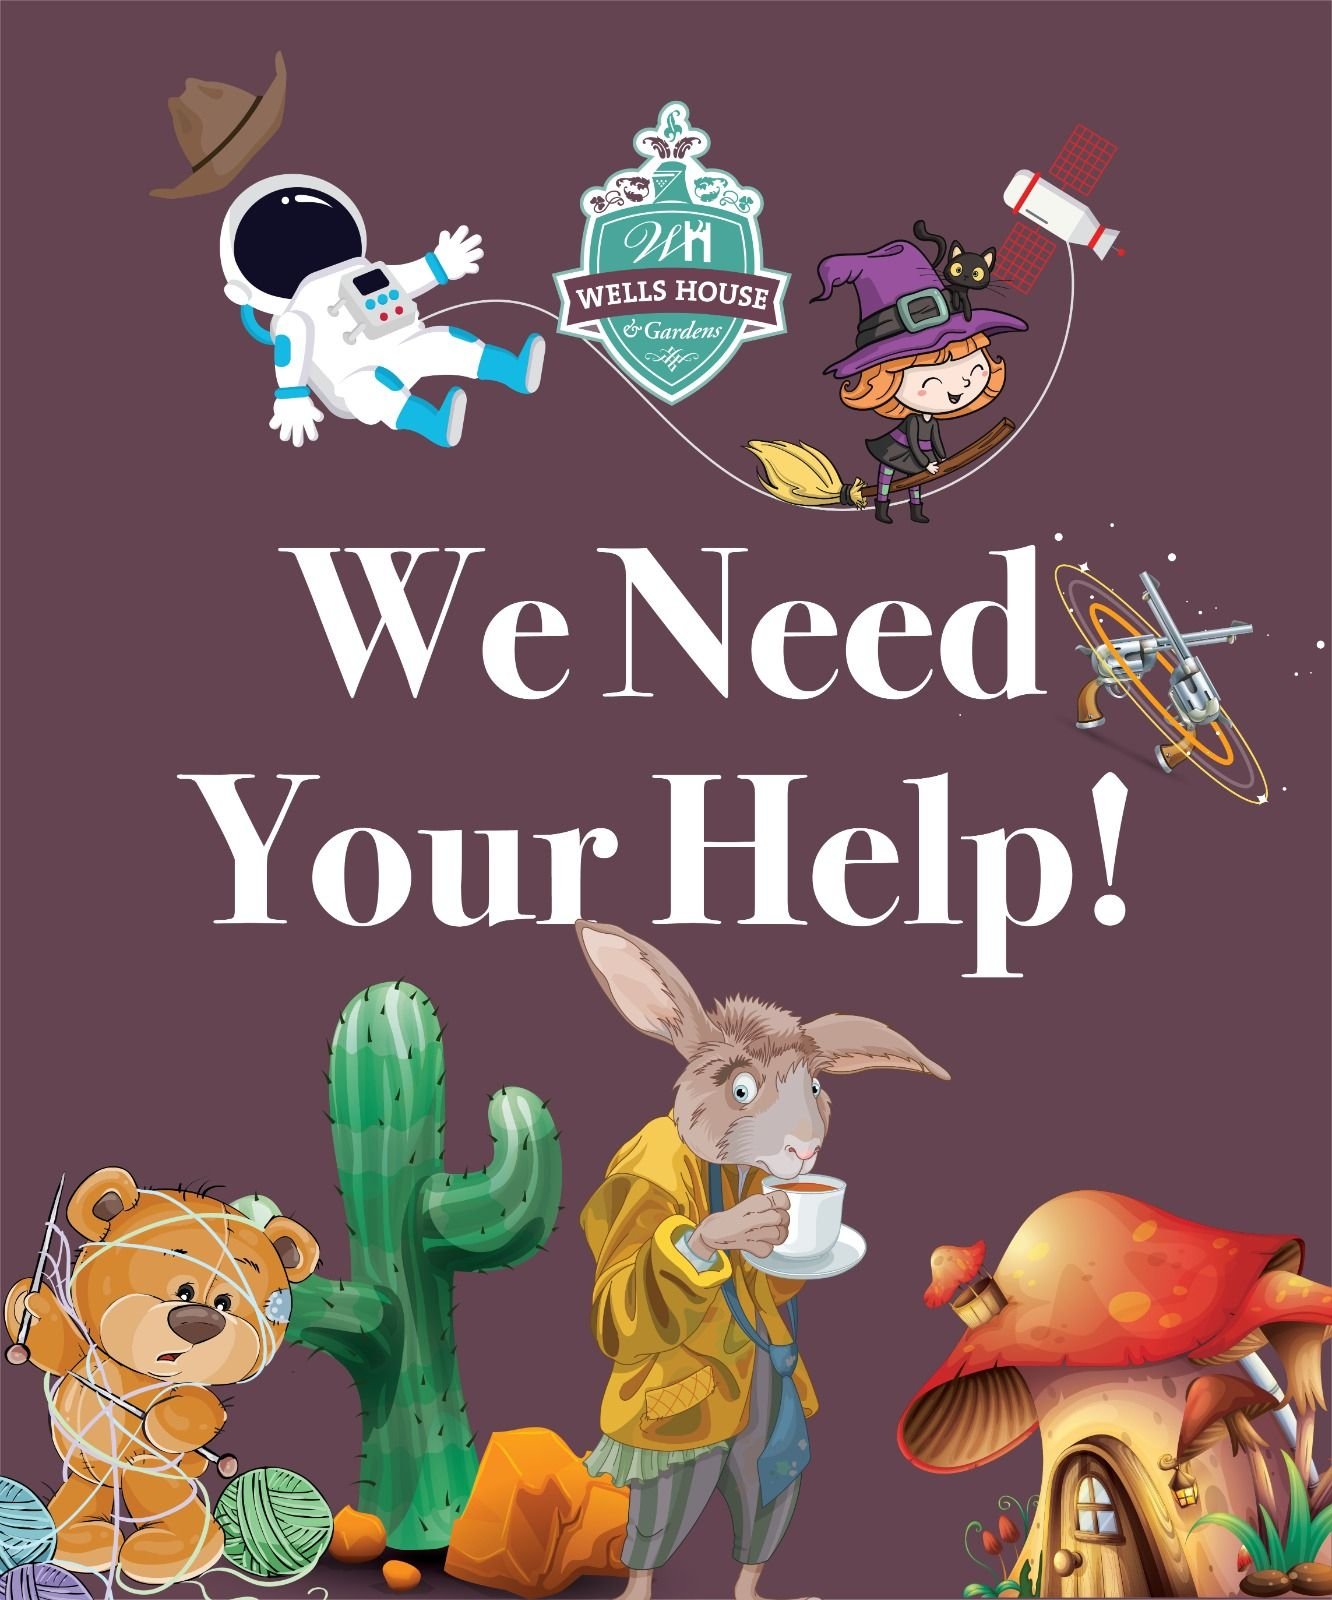 We need your help! Have you or your family got a